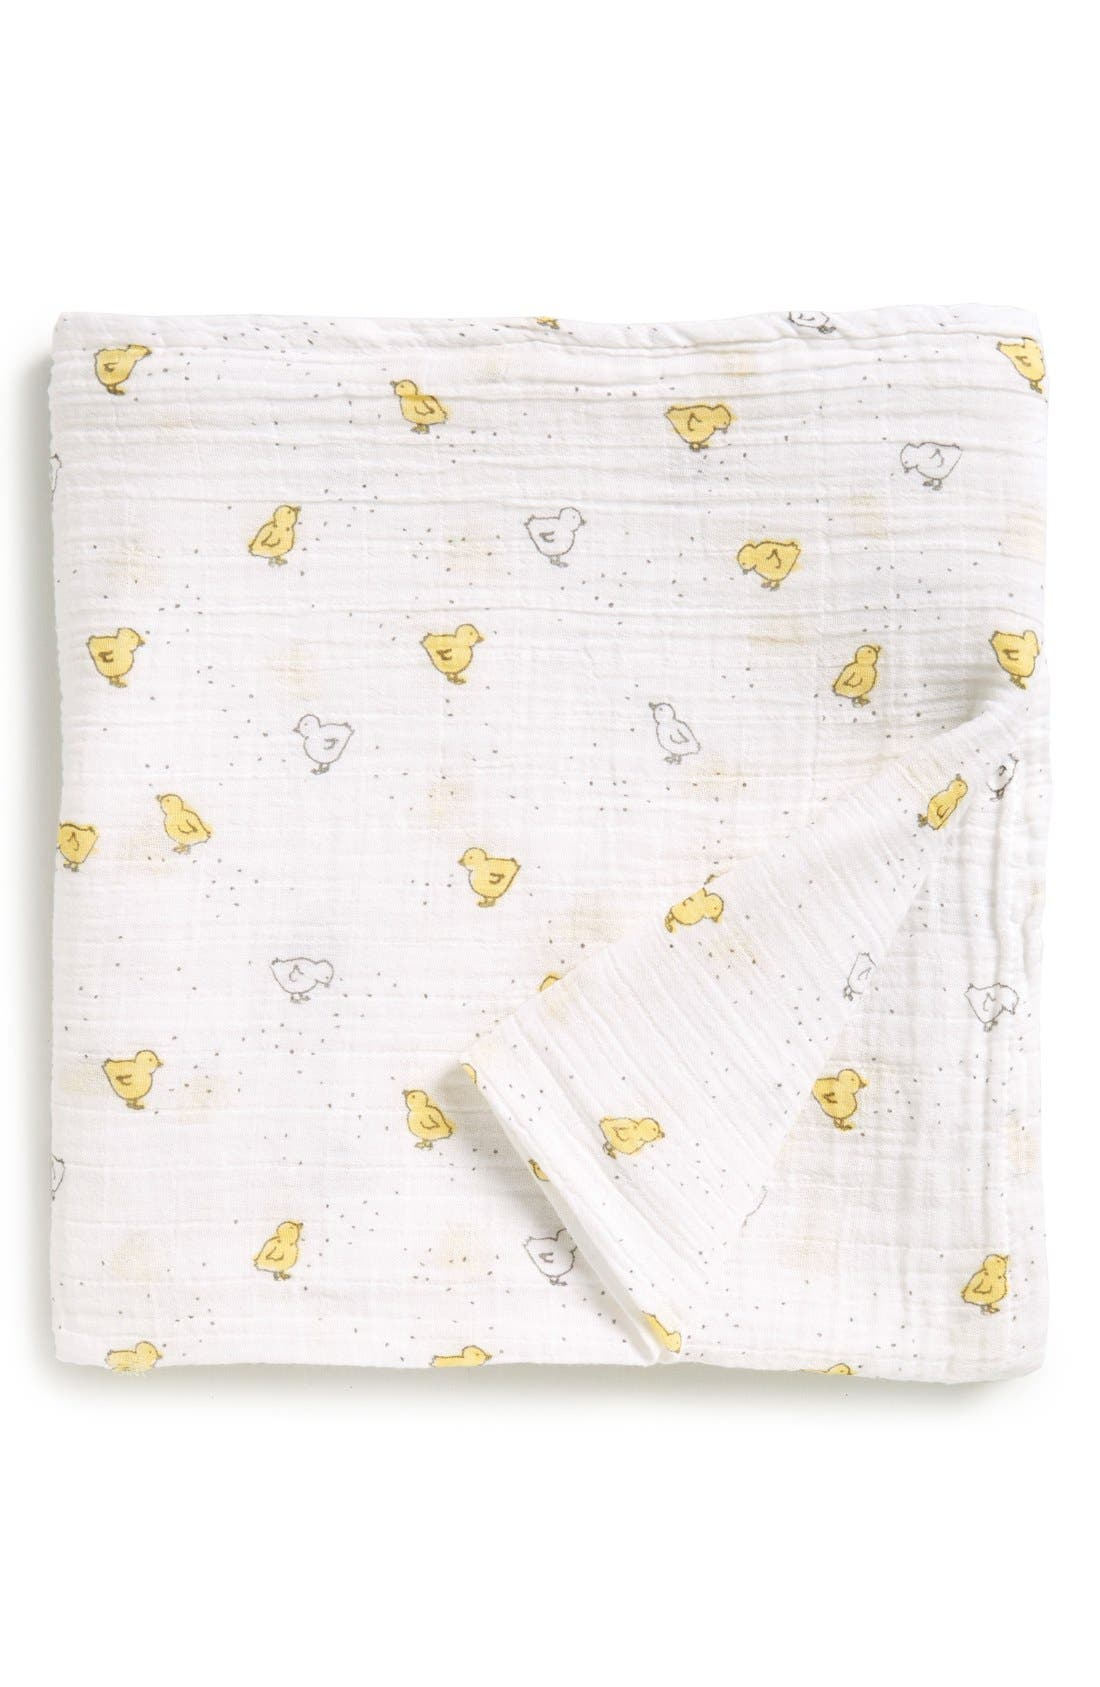 Baby Chick Swaddle Blanket,                             Main thumbnail 1, color,                             100